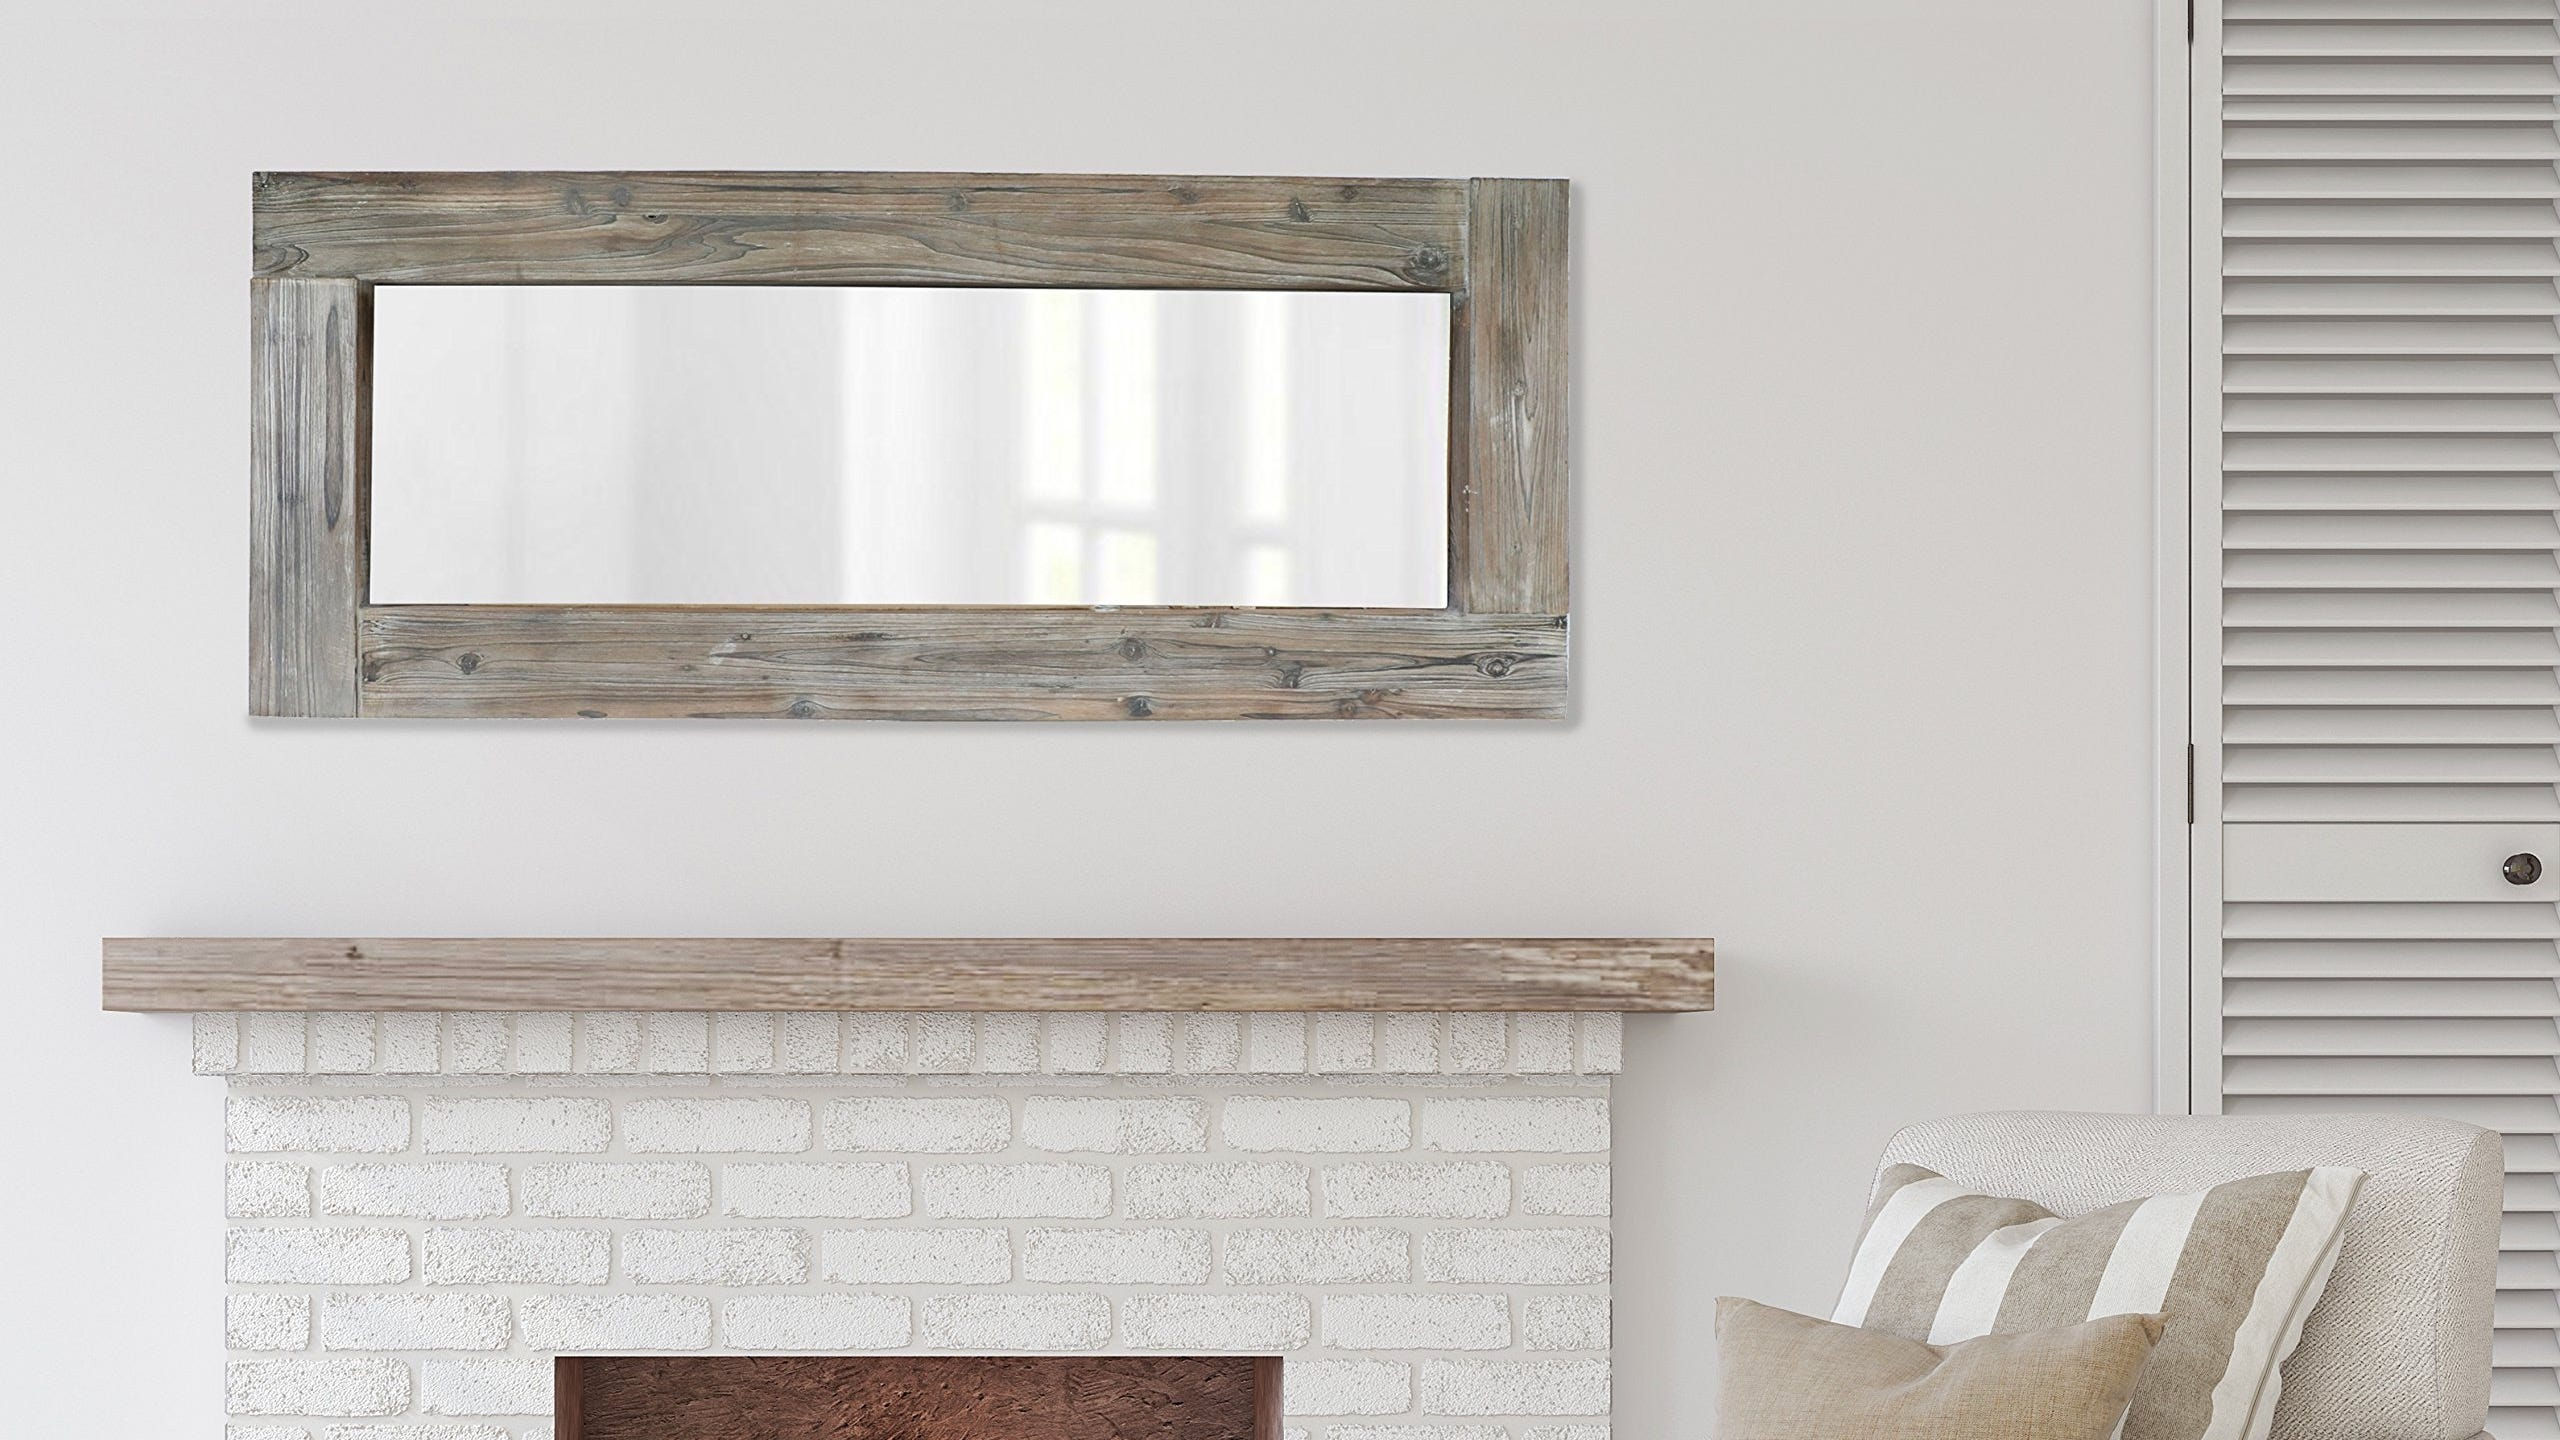 A mirror in a wooden frame hanging above a fireplace.